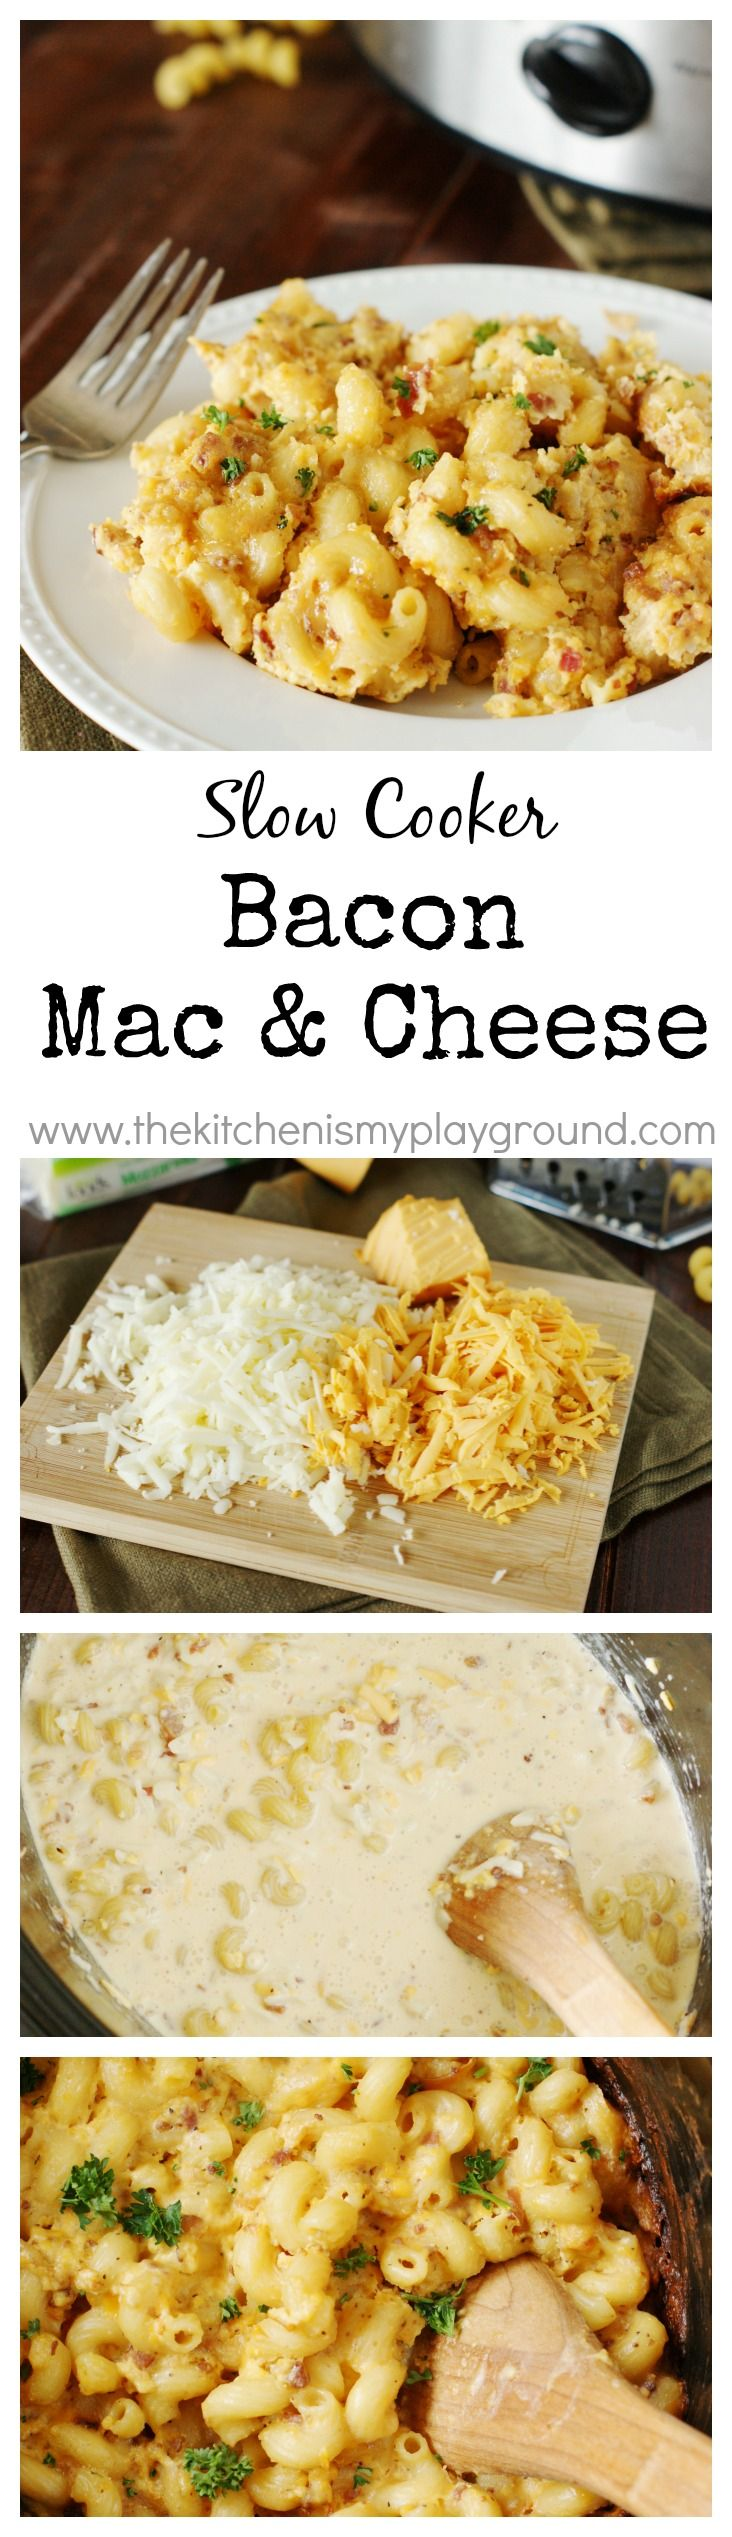 http://www.phomz.com/category/Slow-Cooker/ Slow Cooker Bacon Macaroni and Cheese ~ with two kinds of creamy cheese, bacon, and crockpot convenience, it will be a favorite at your house for sure! www.thekitchenismyplayground.com